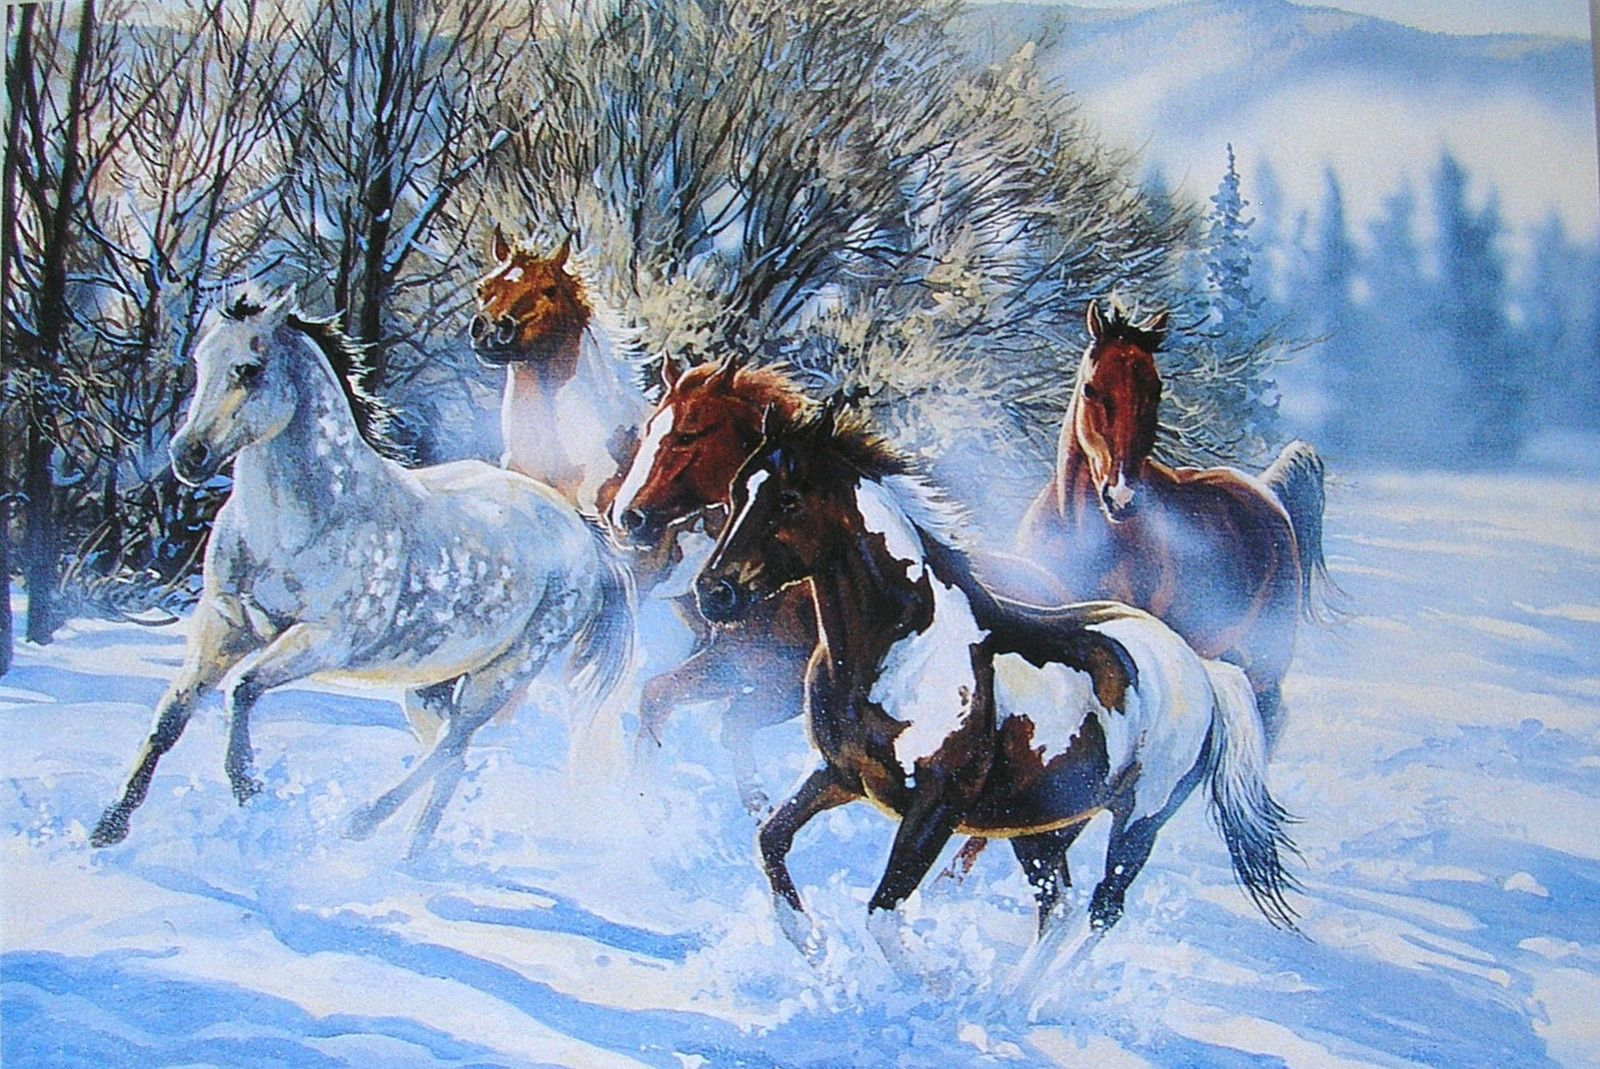 Leanin Tree Janene Grende Galloping Horses Snow Christmas Holiday Greeting Card